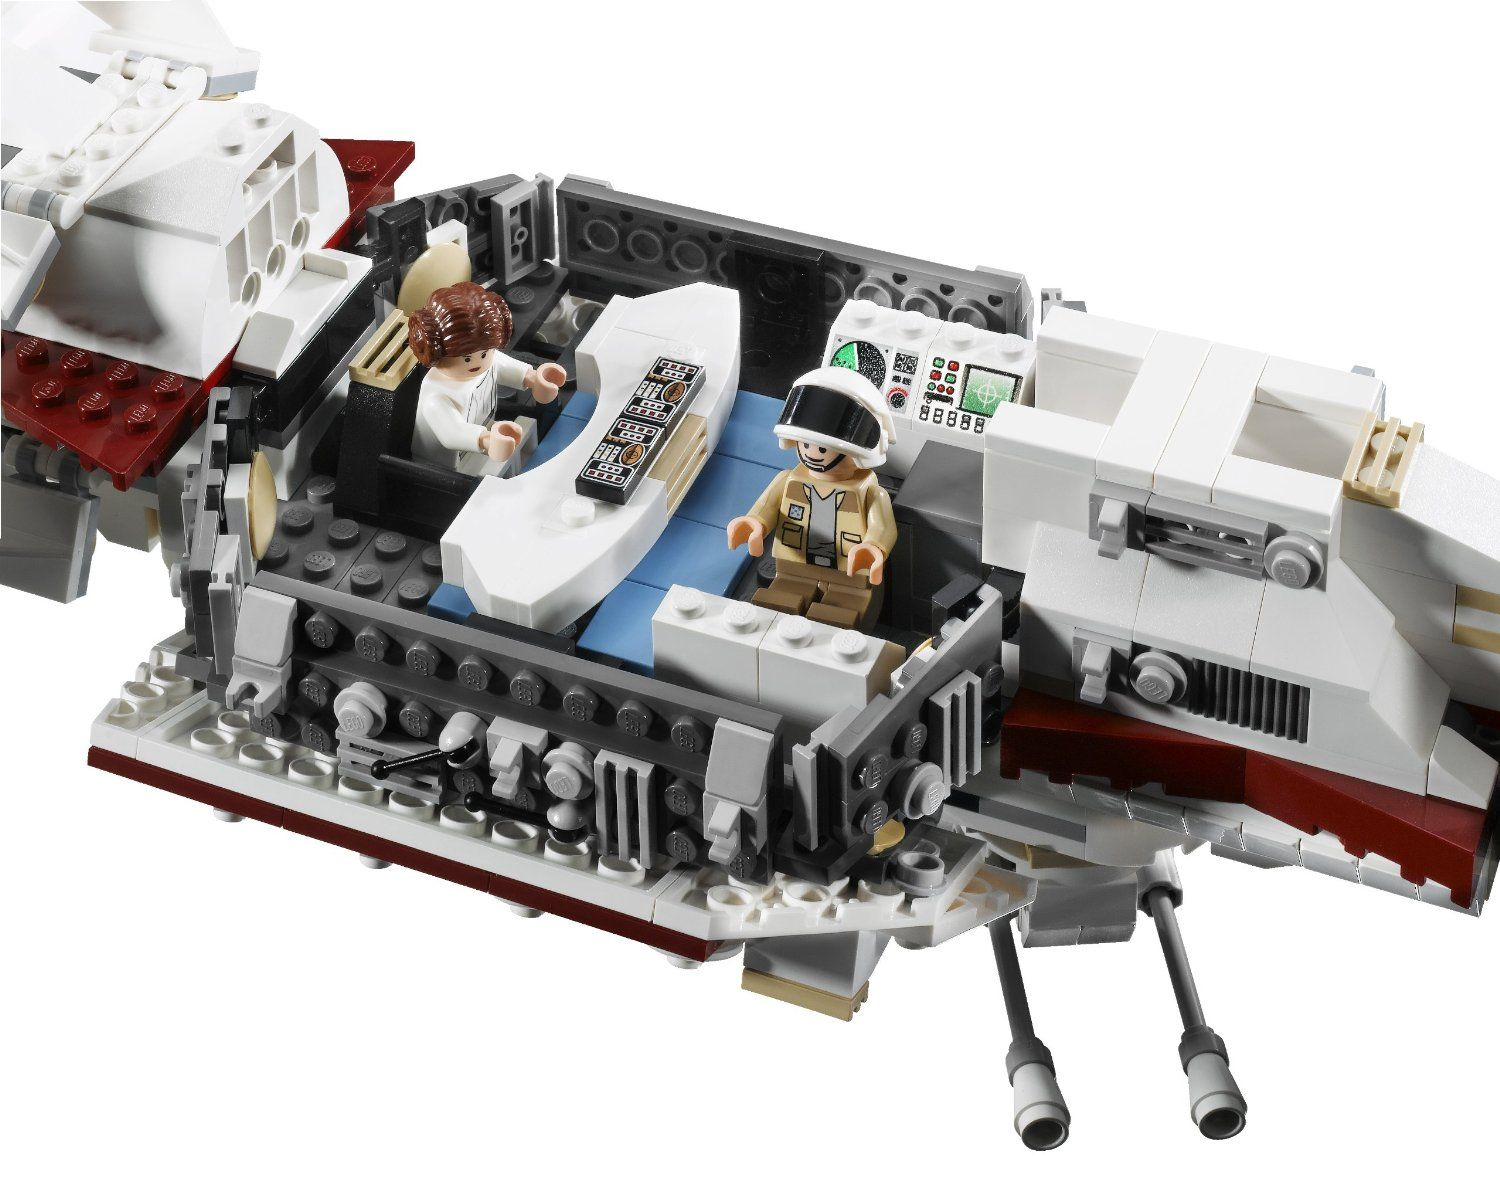 Lego Star Wars Tantive Iv 10198 By Lego Lots Of Interior Details Including Leia S Desk And Command Center With Seats For Lego Star Wars Lego Army Star Wars